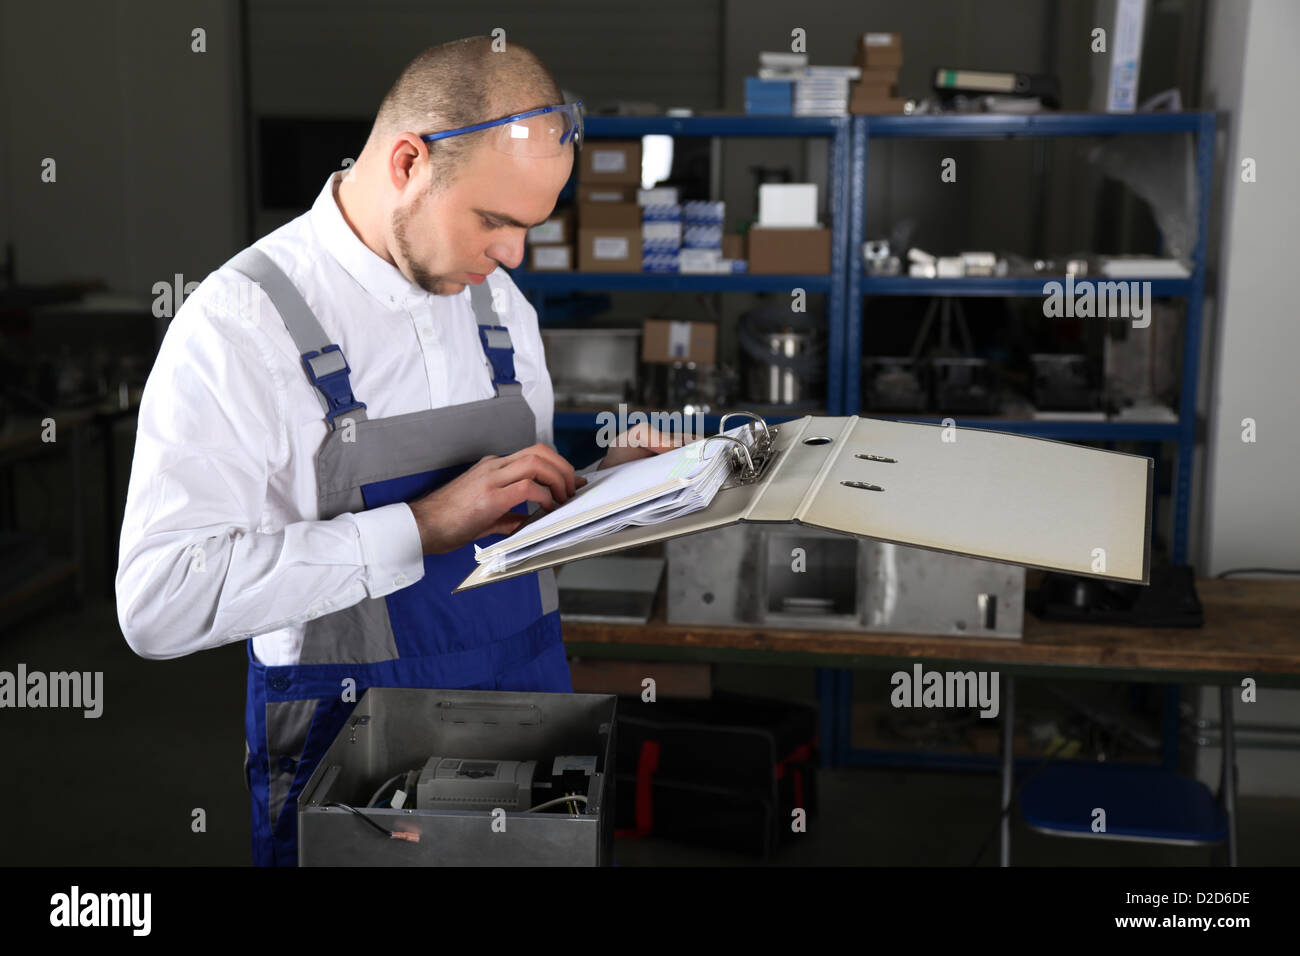 Mechanical technician at work - Stock Image